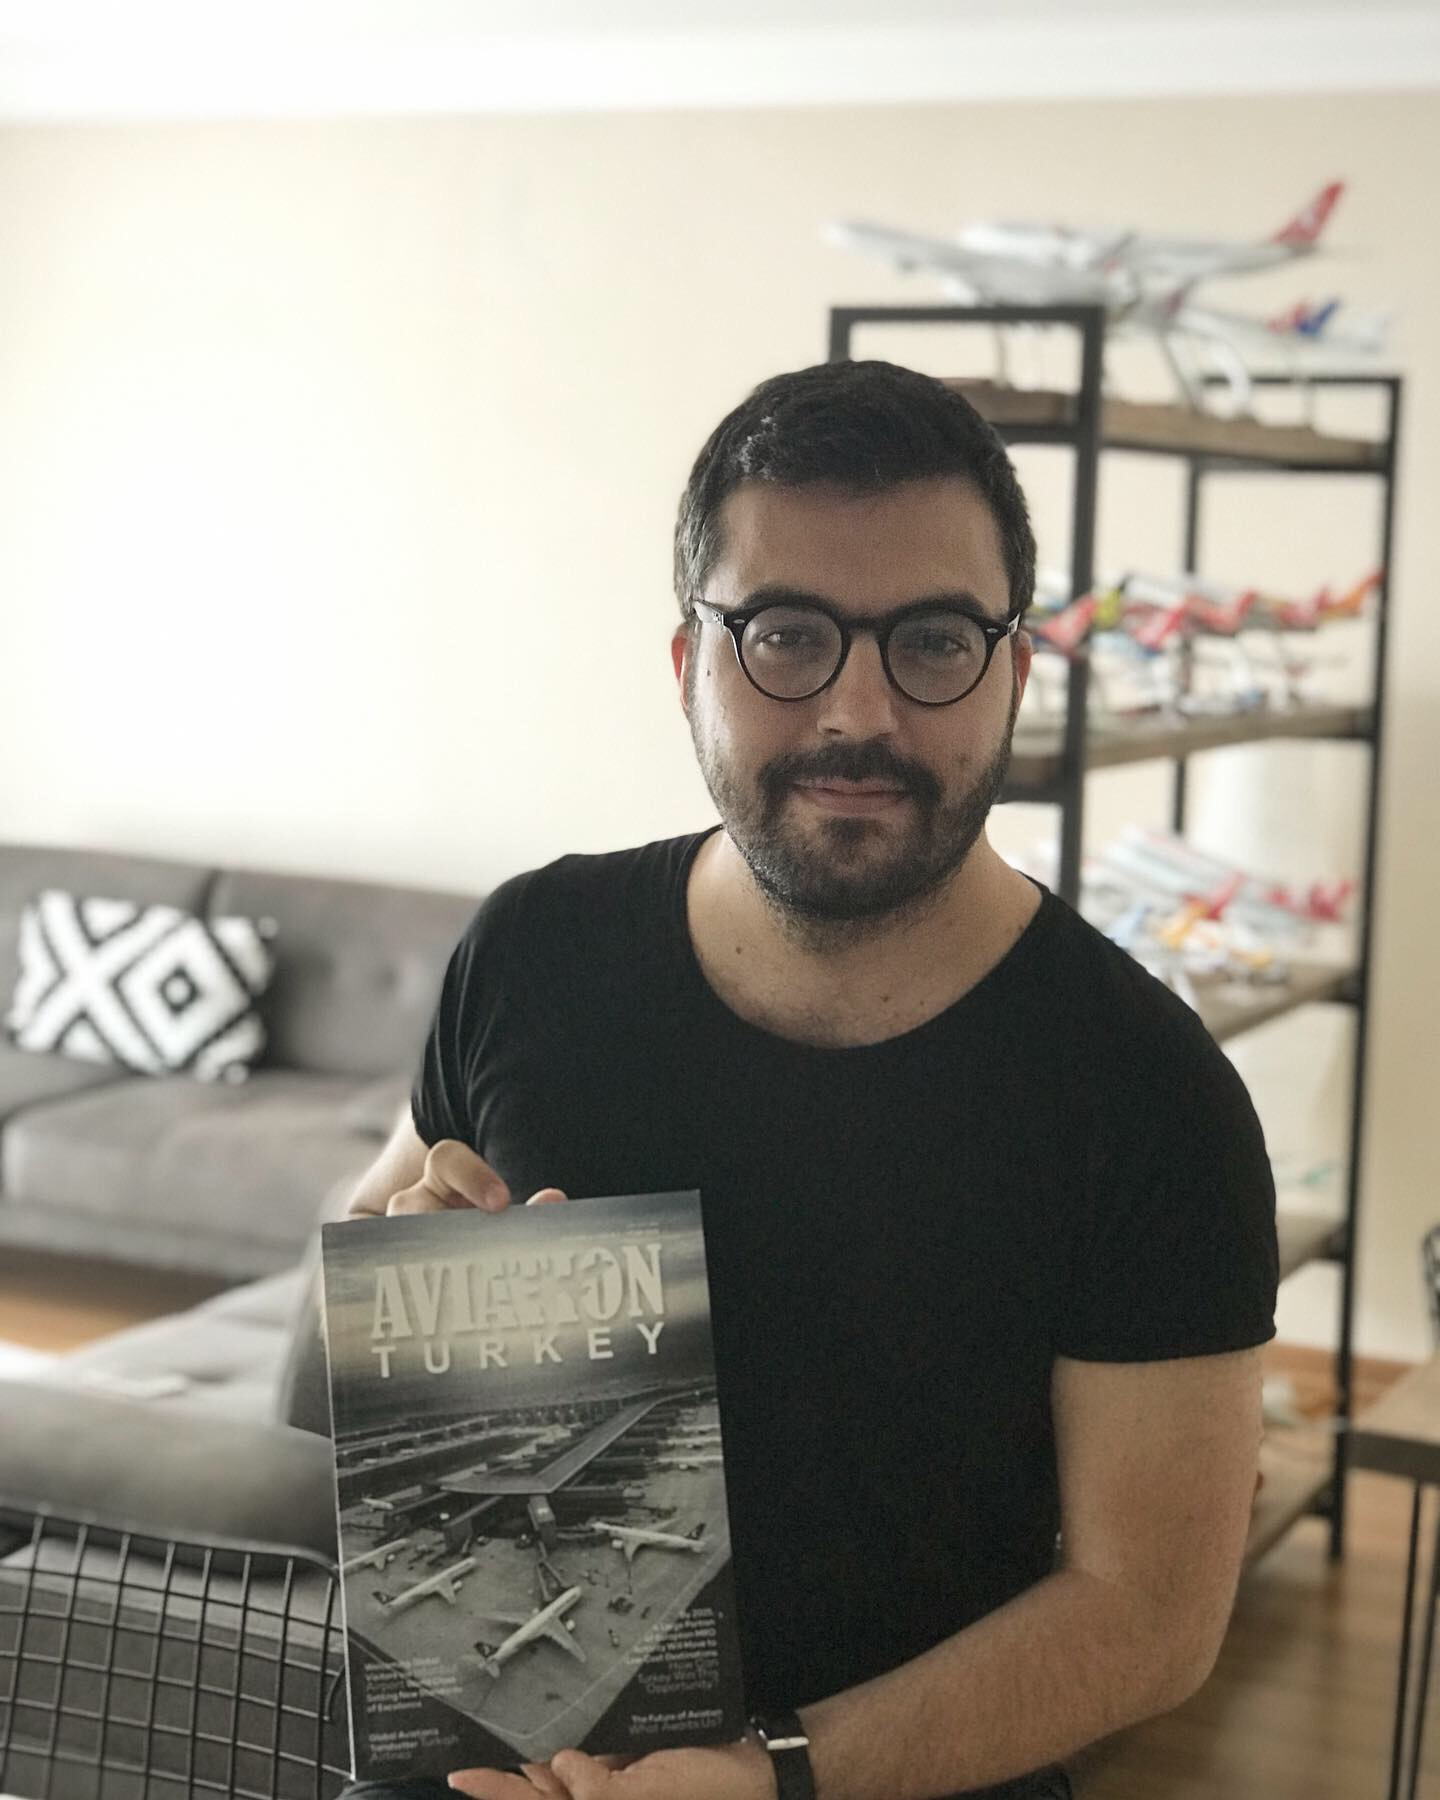 Aviation Turkey Dergisi Yayında